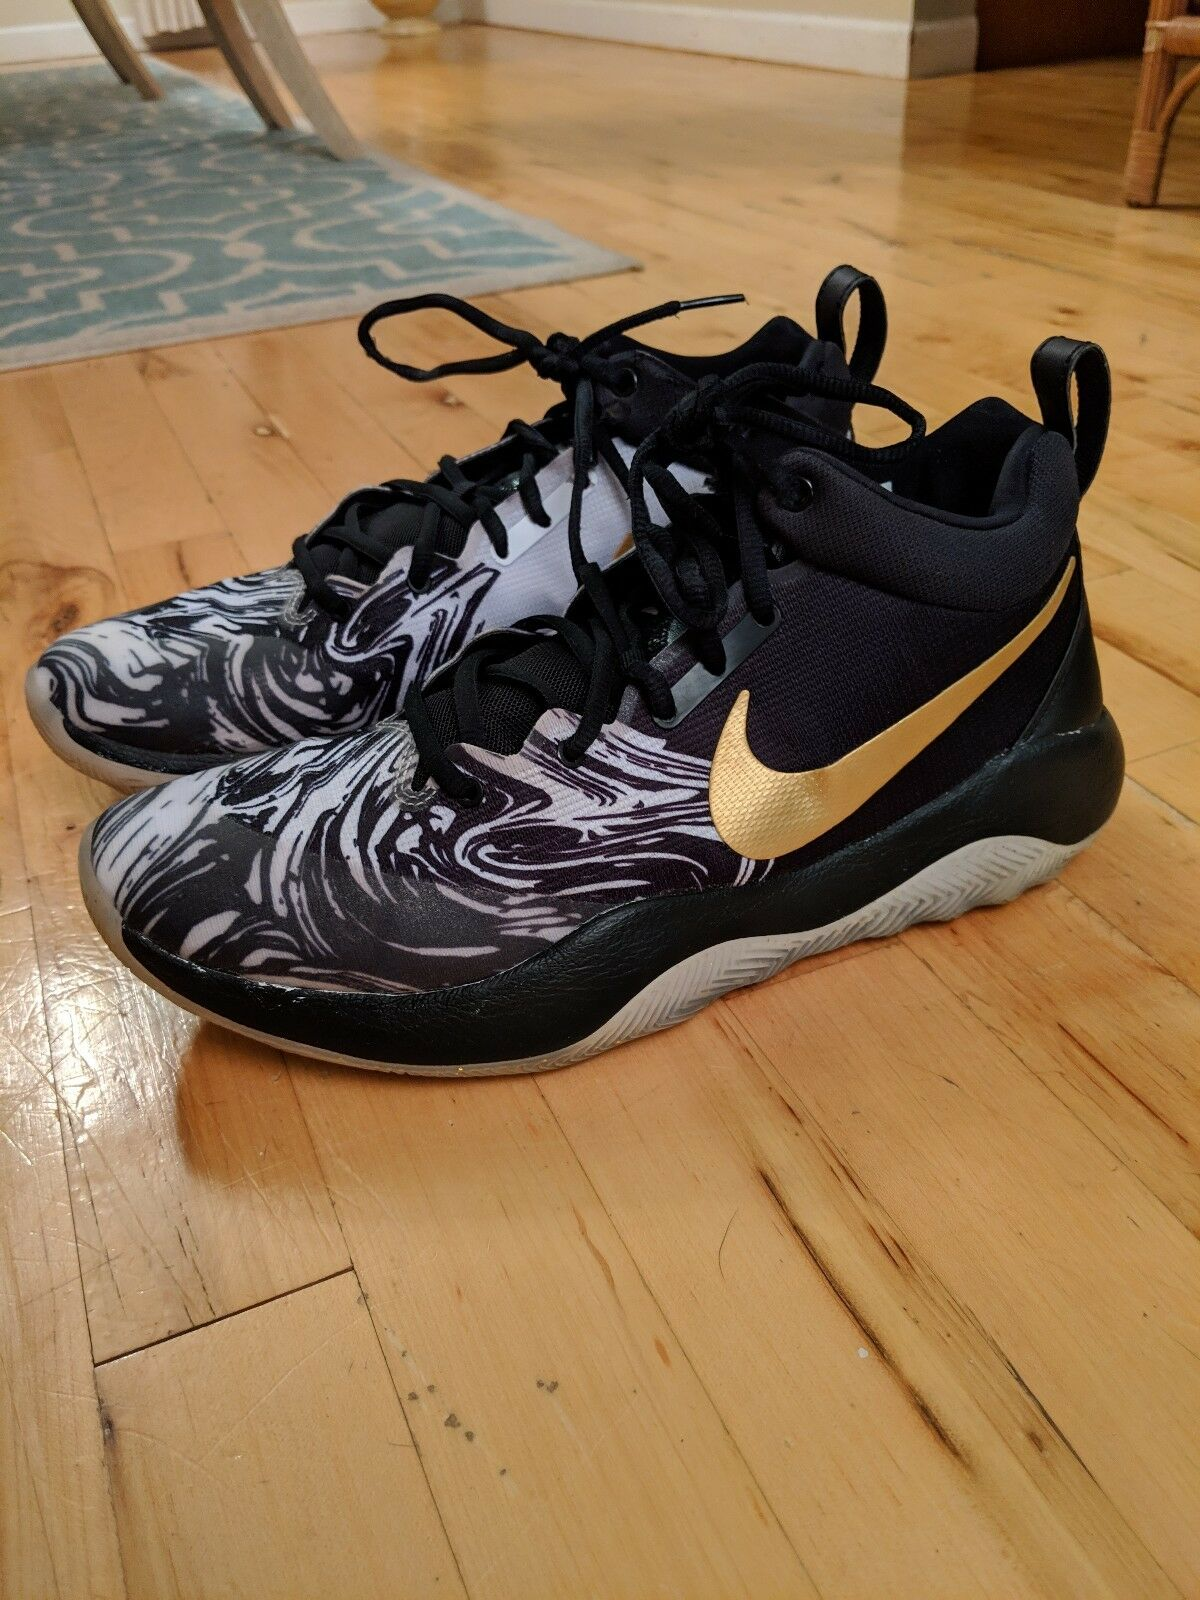 Nike Zoom Rev BHM QS Mens Basketball shoes SZ 10 Black Metallic gold AA1009 001